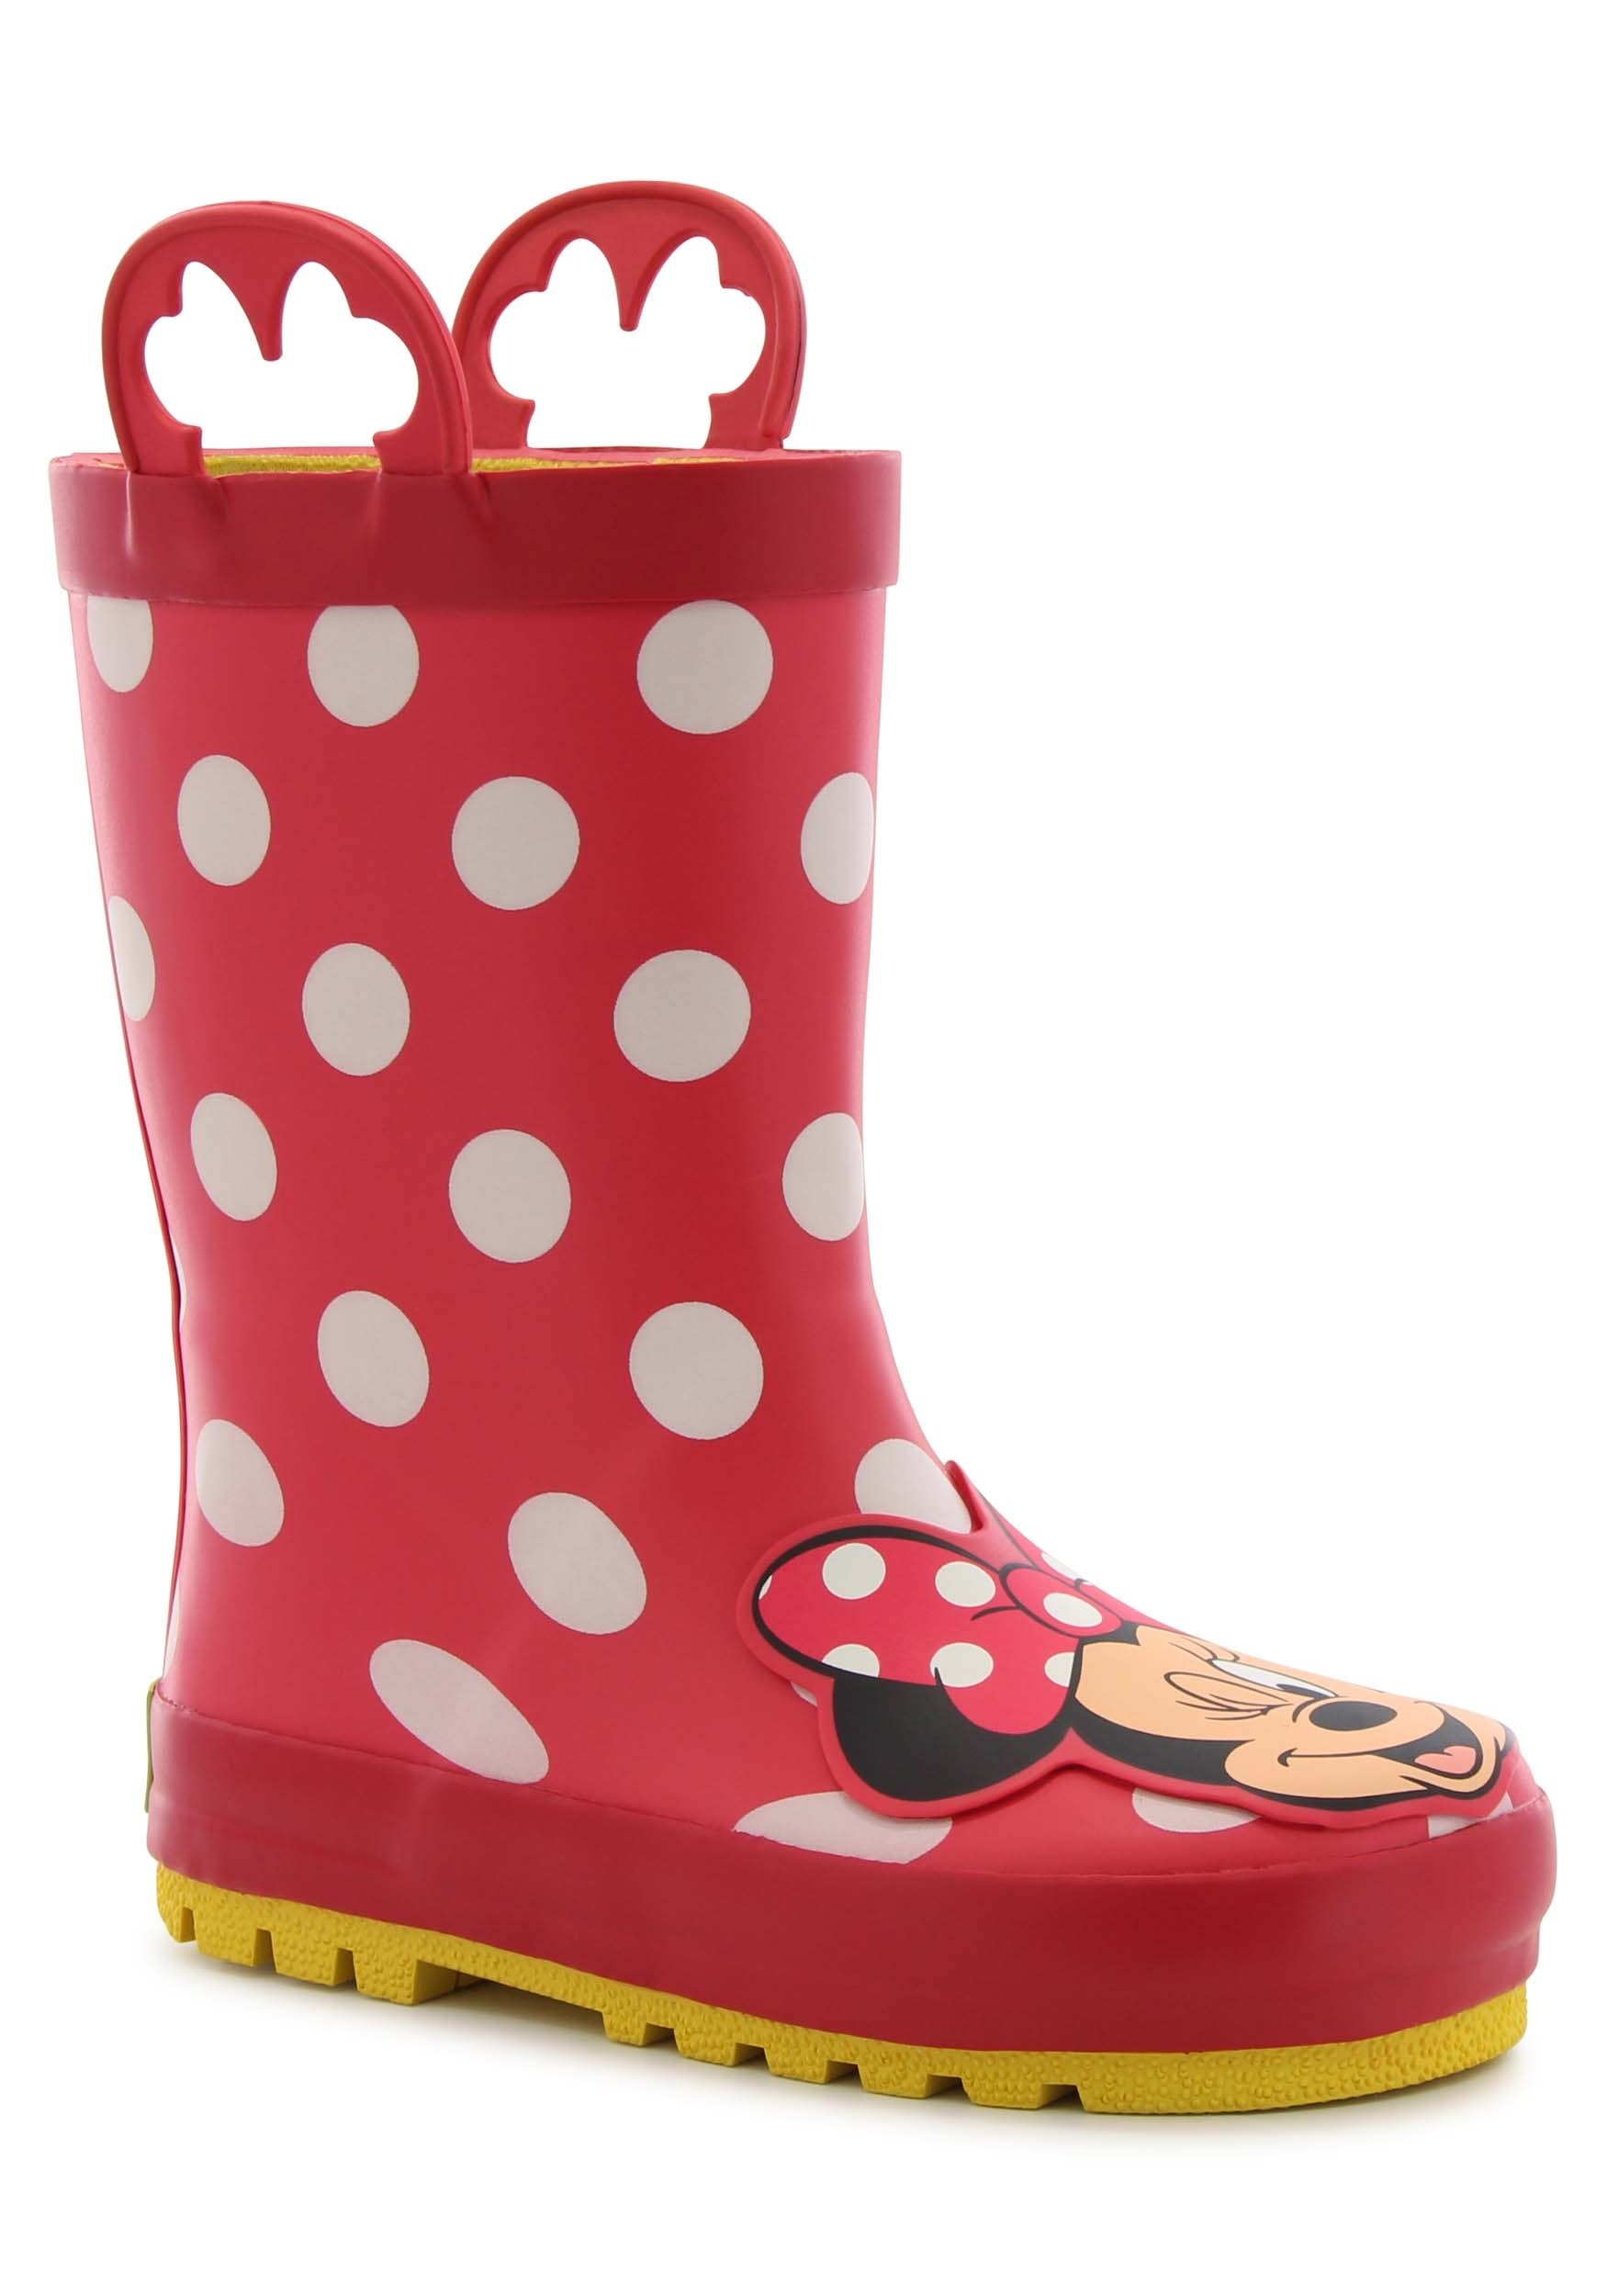 Disney Minnie Mouse Rain Boots